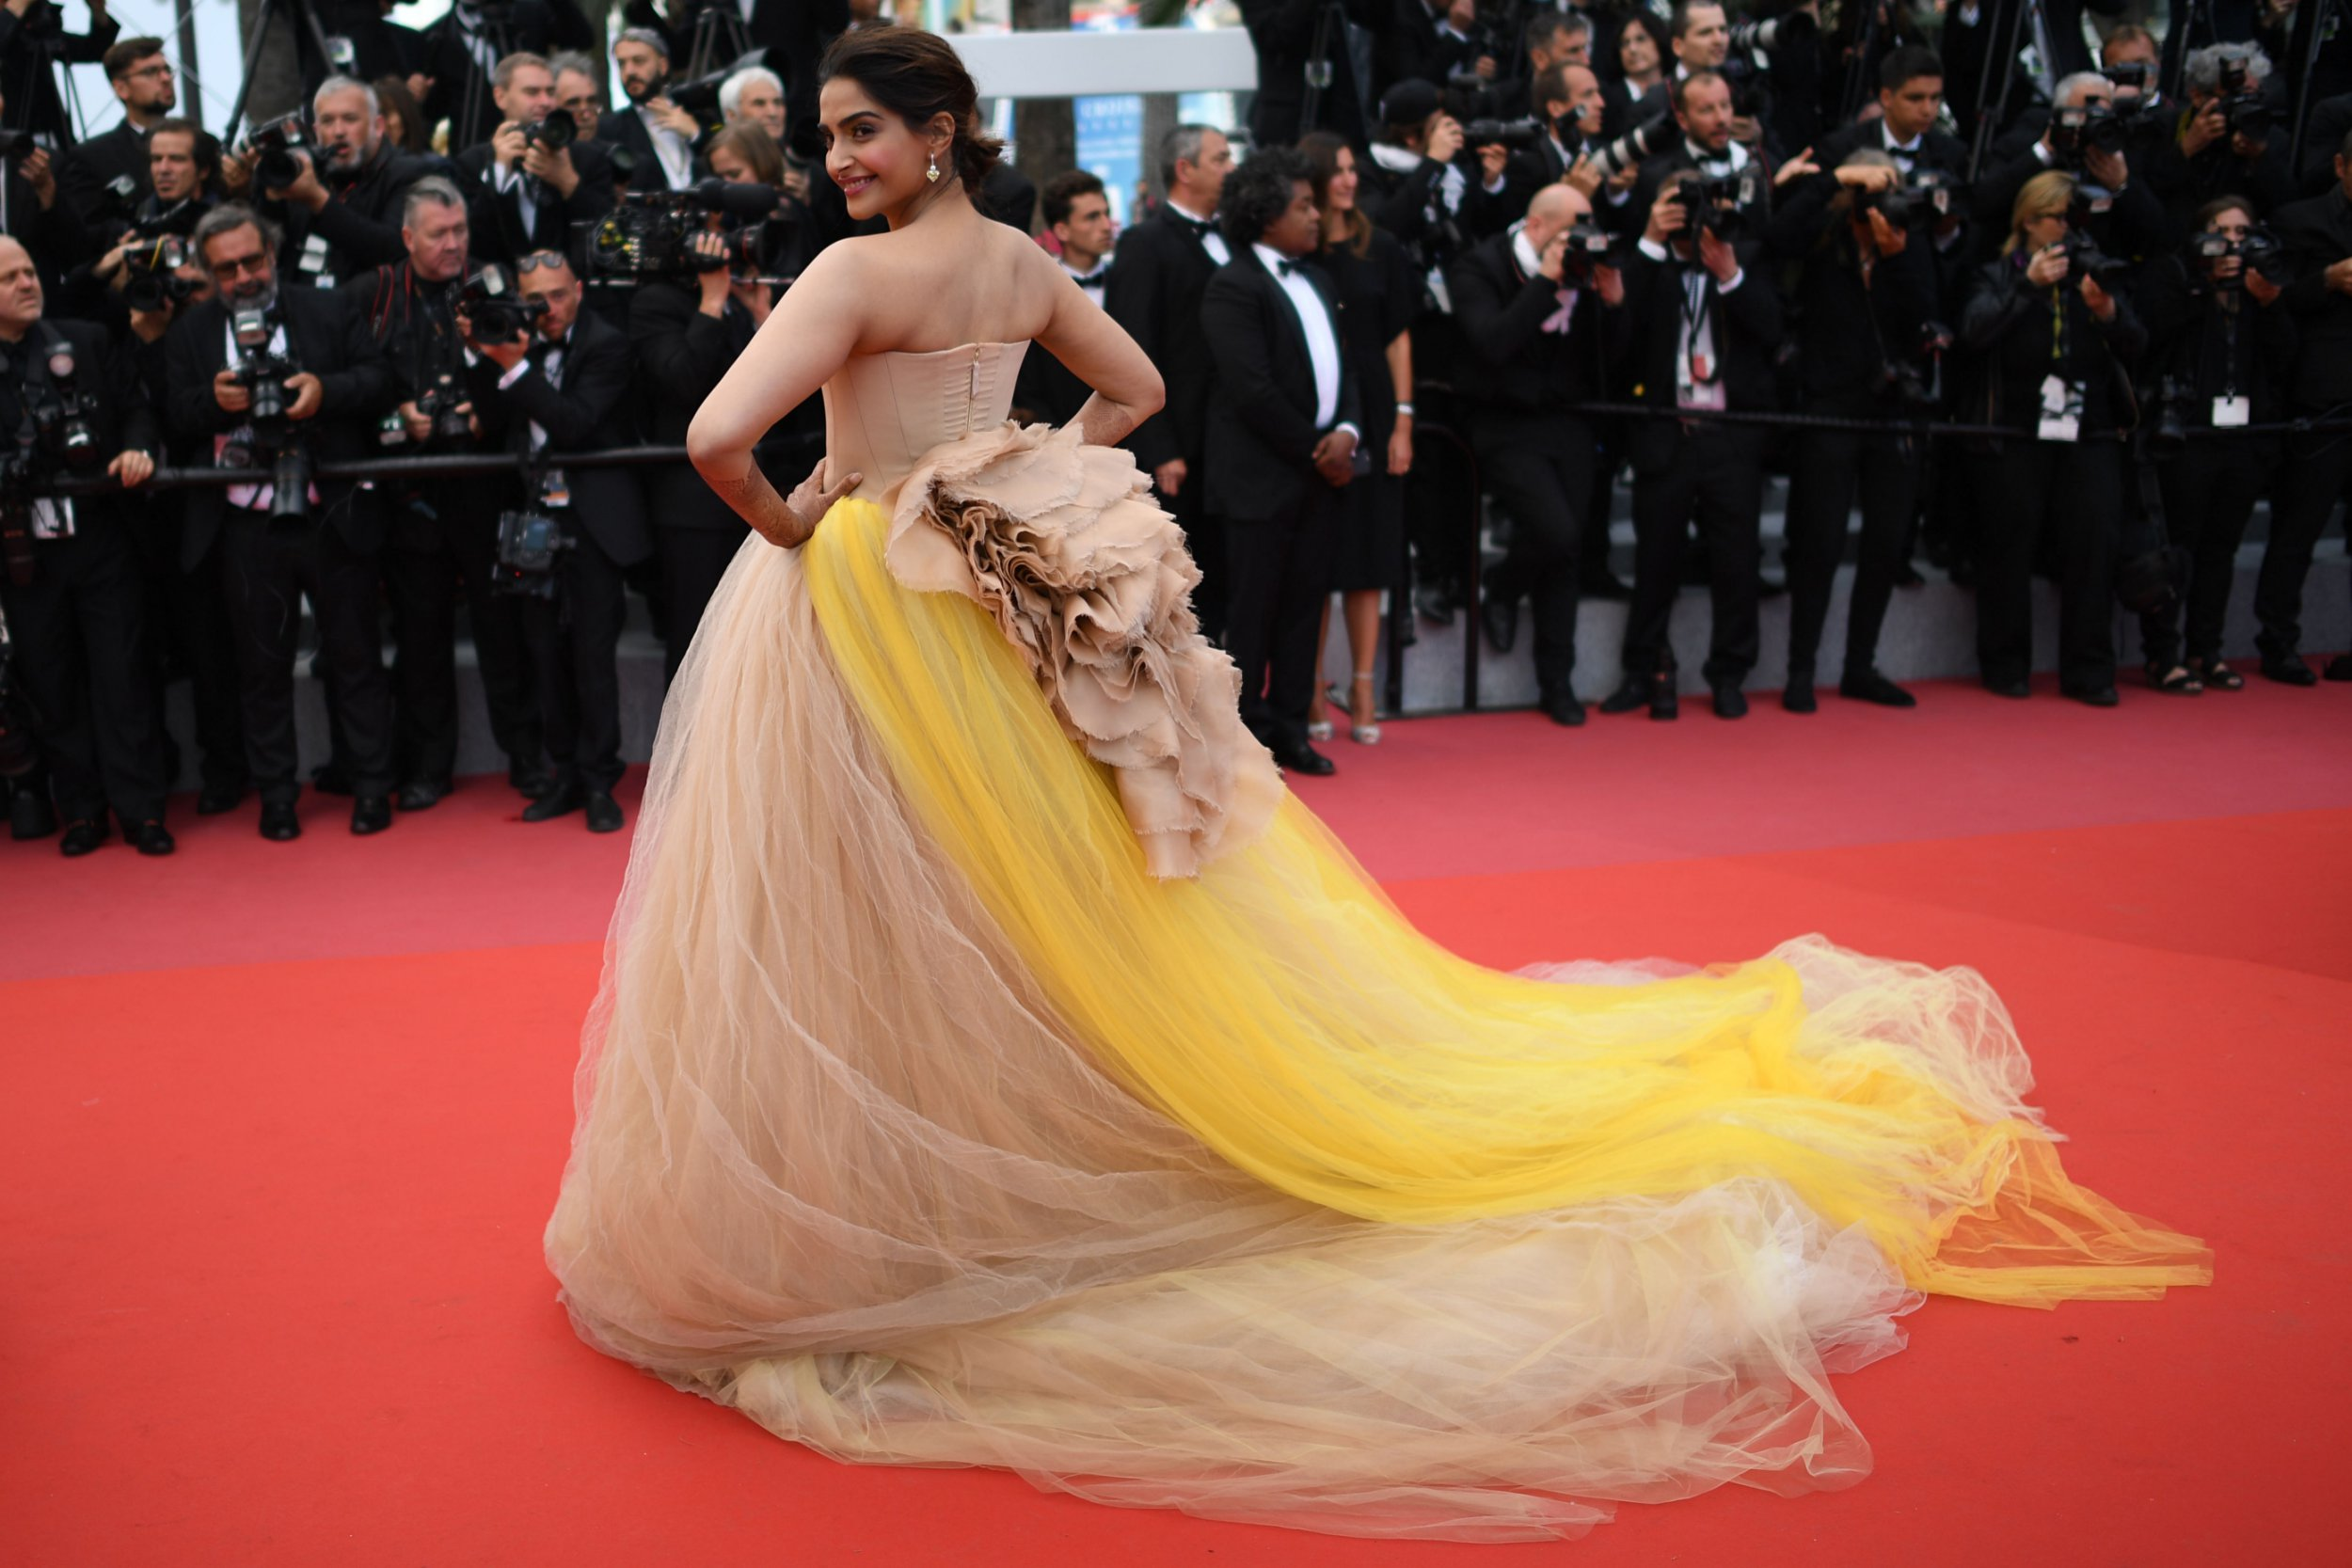 Bollywood's Sonam Kapoor shakes off the nerves and owns the Cannes red carpet